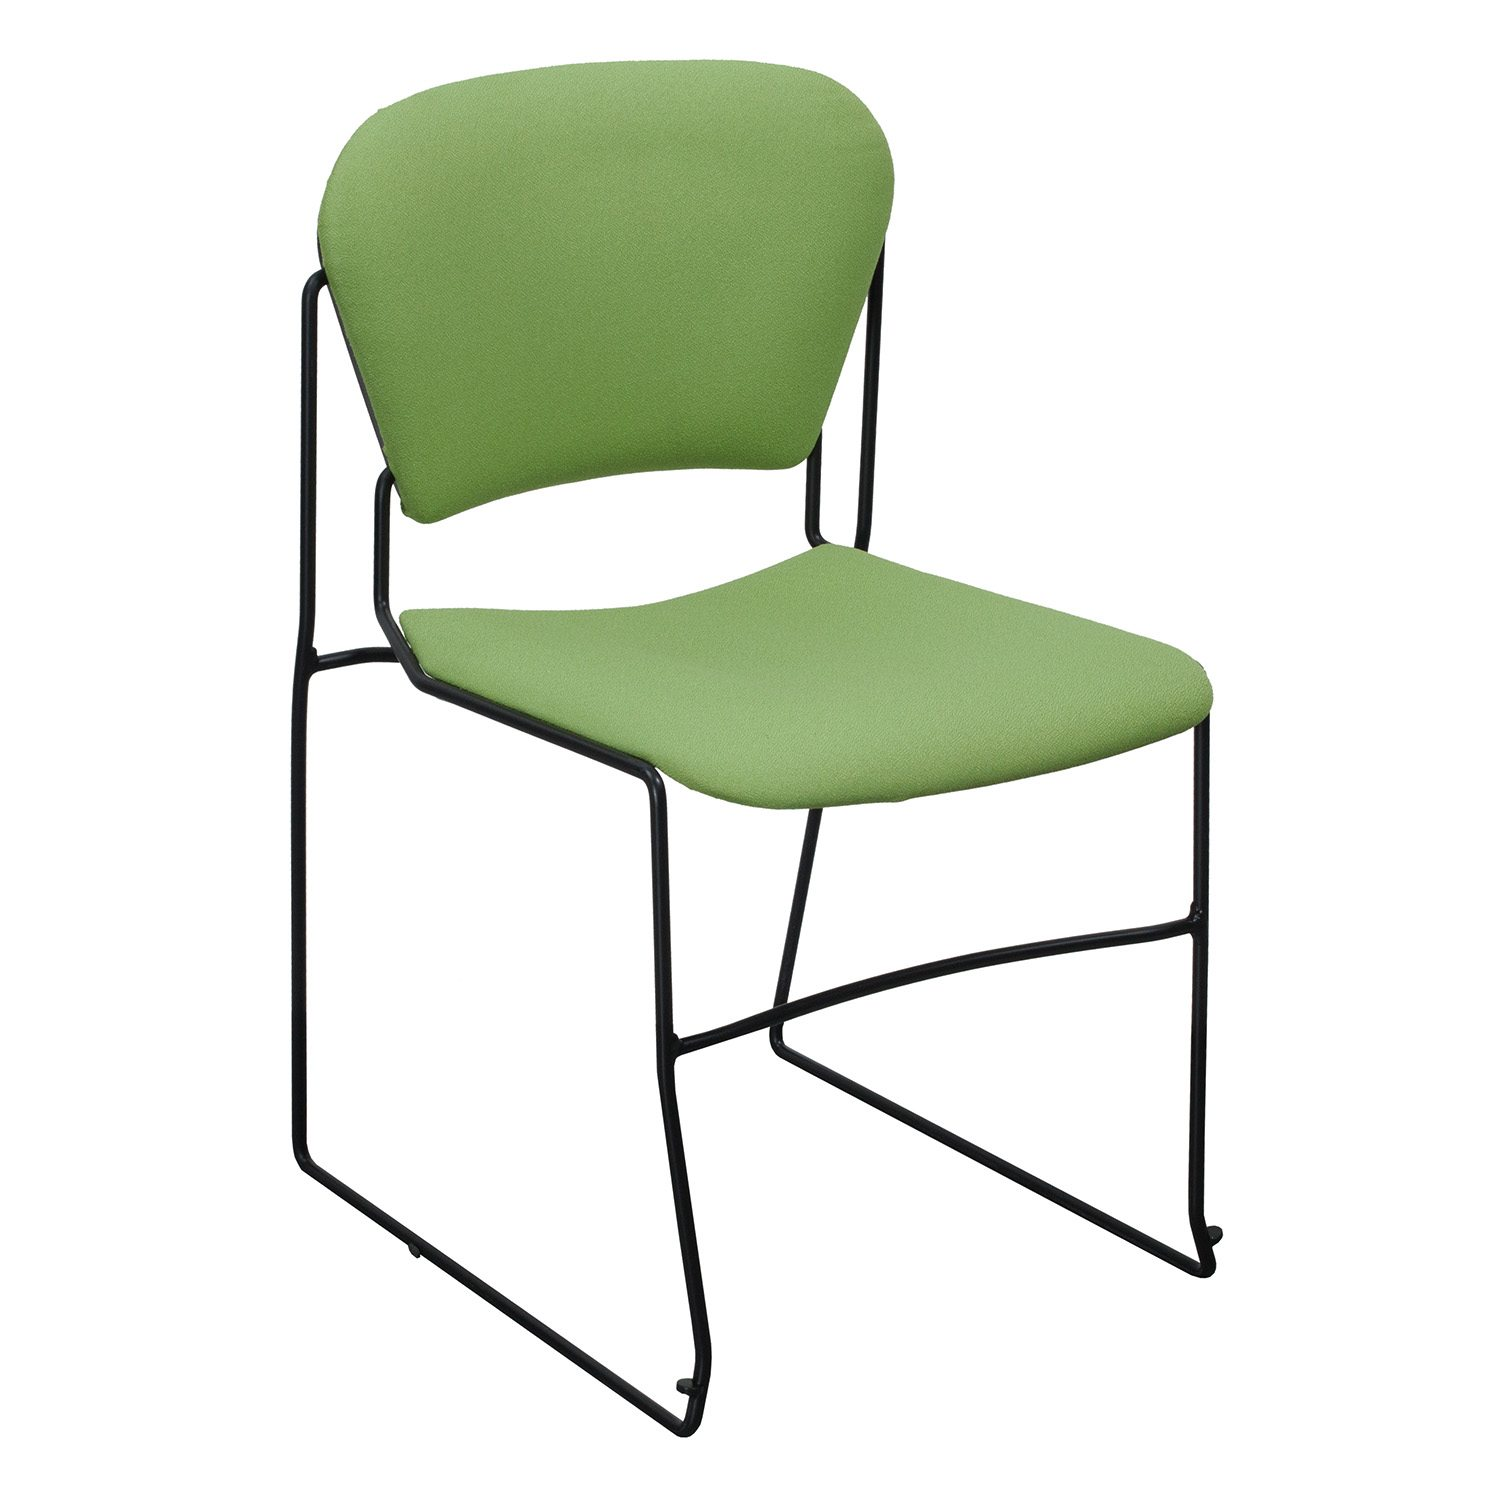 Ki Chairs Ki Perry Used Reupholstered Stack Chair Light Green